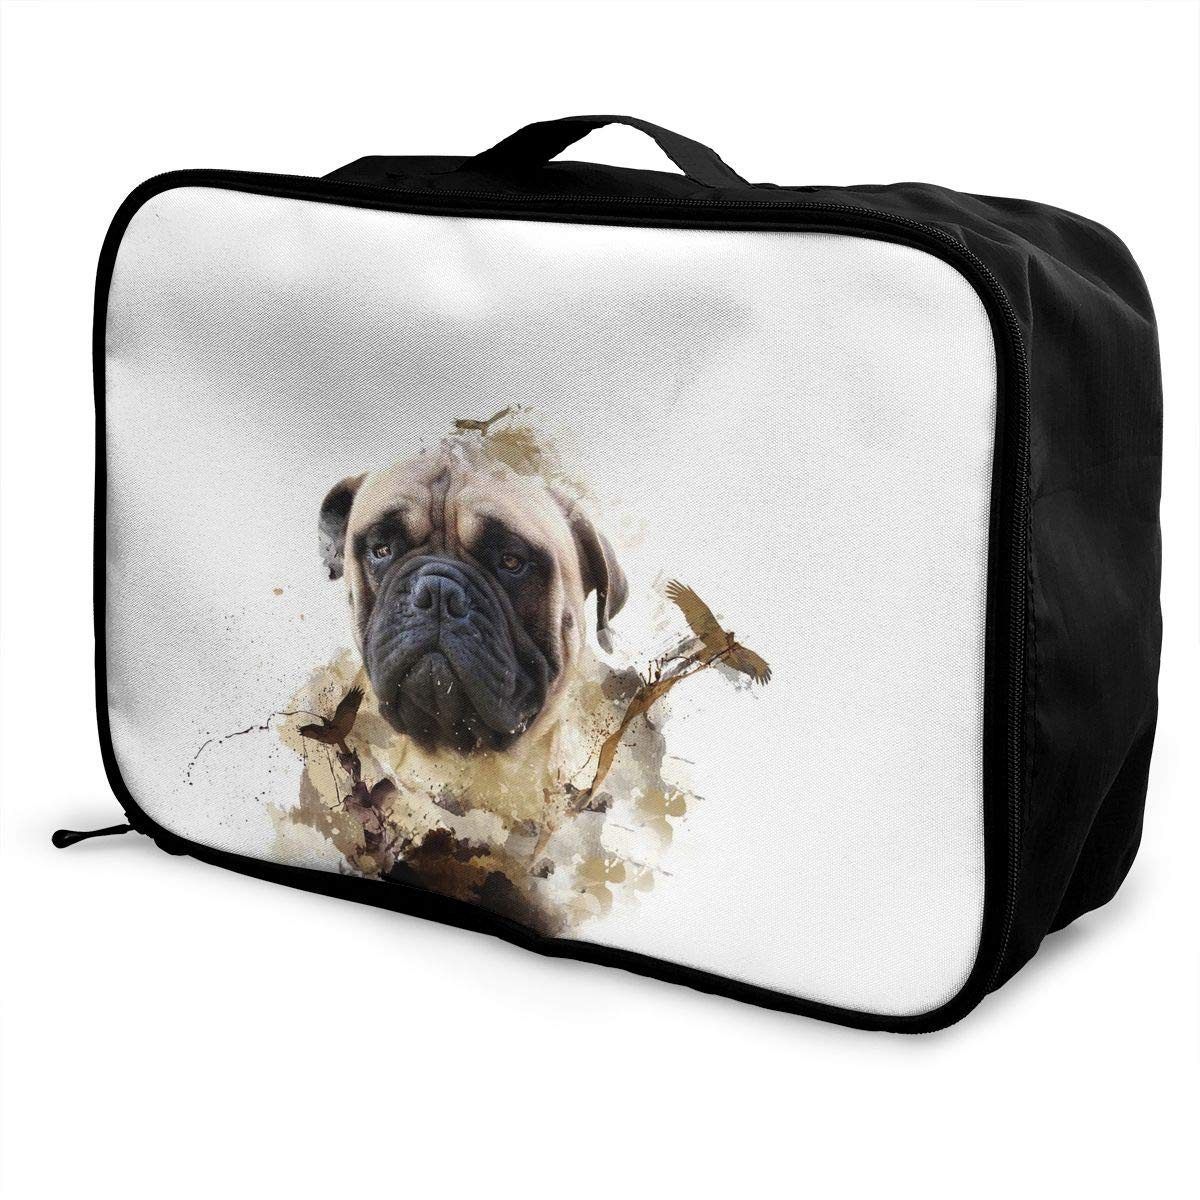 Travel Luggage Duffle Bag Lightweight Portable Handbag Animals Bull Dog Print Large Capacity Waterproof Foldable Storage Tote